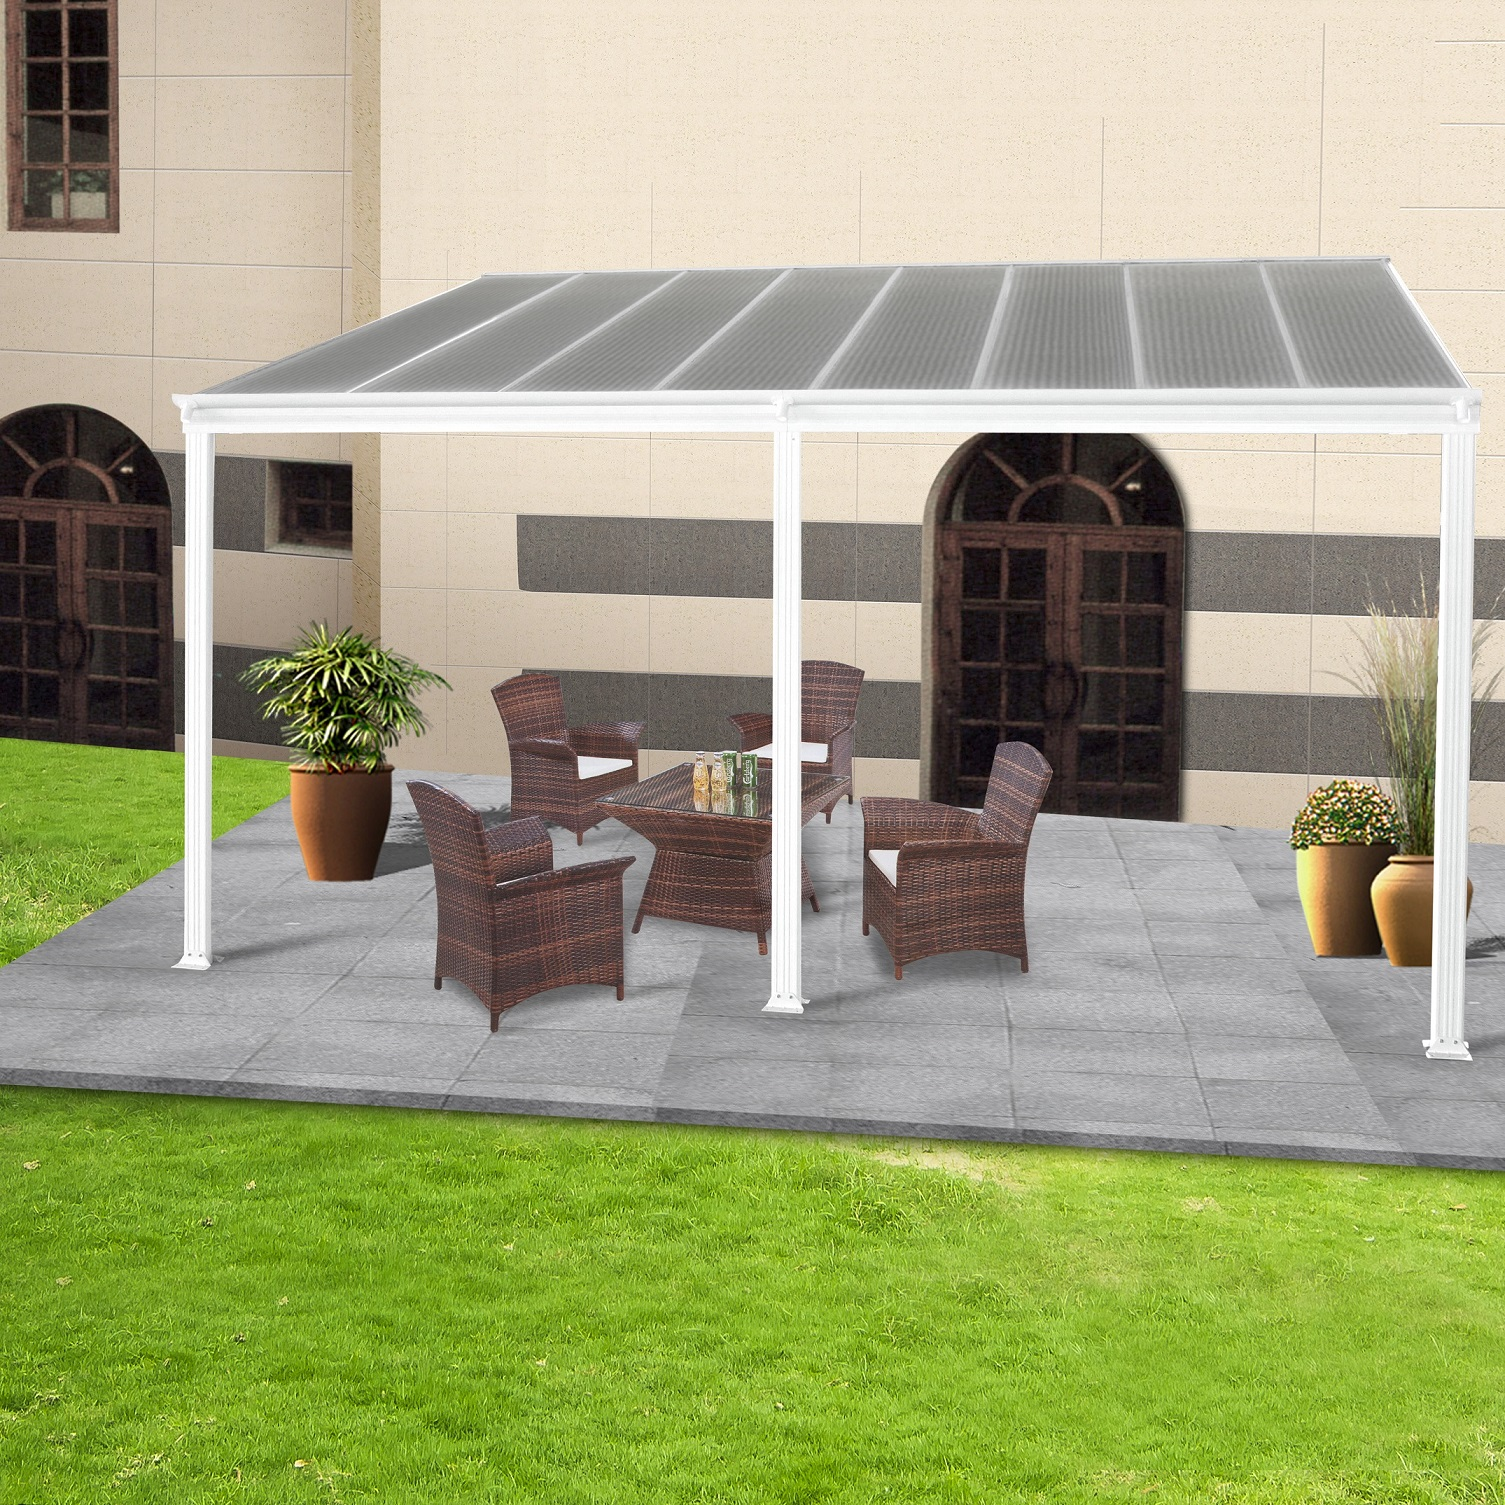 toit terrasse pergola 5x3 m en aluminium blanc abrirama tt3050bw8 l 39 abri de. Black Bedroom Furniture Sets. Home Design Ideas